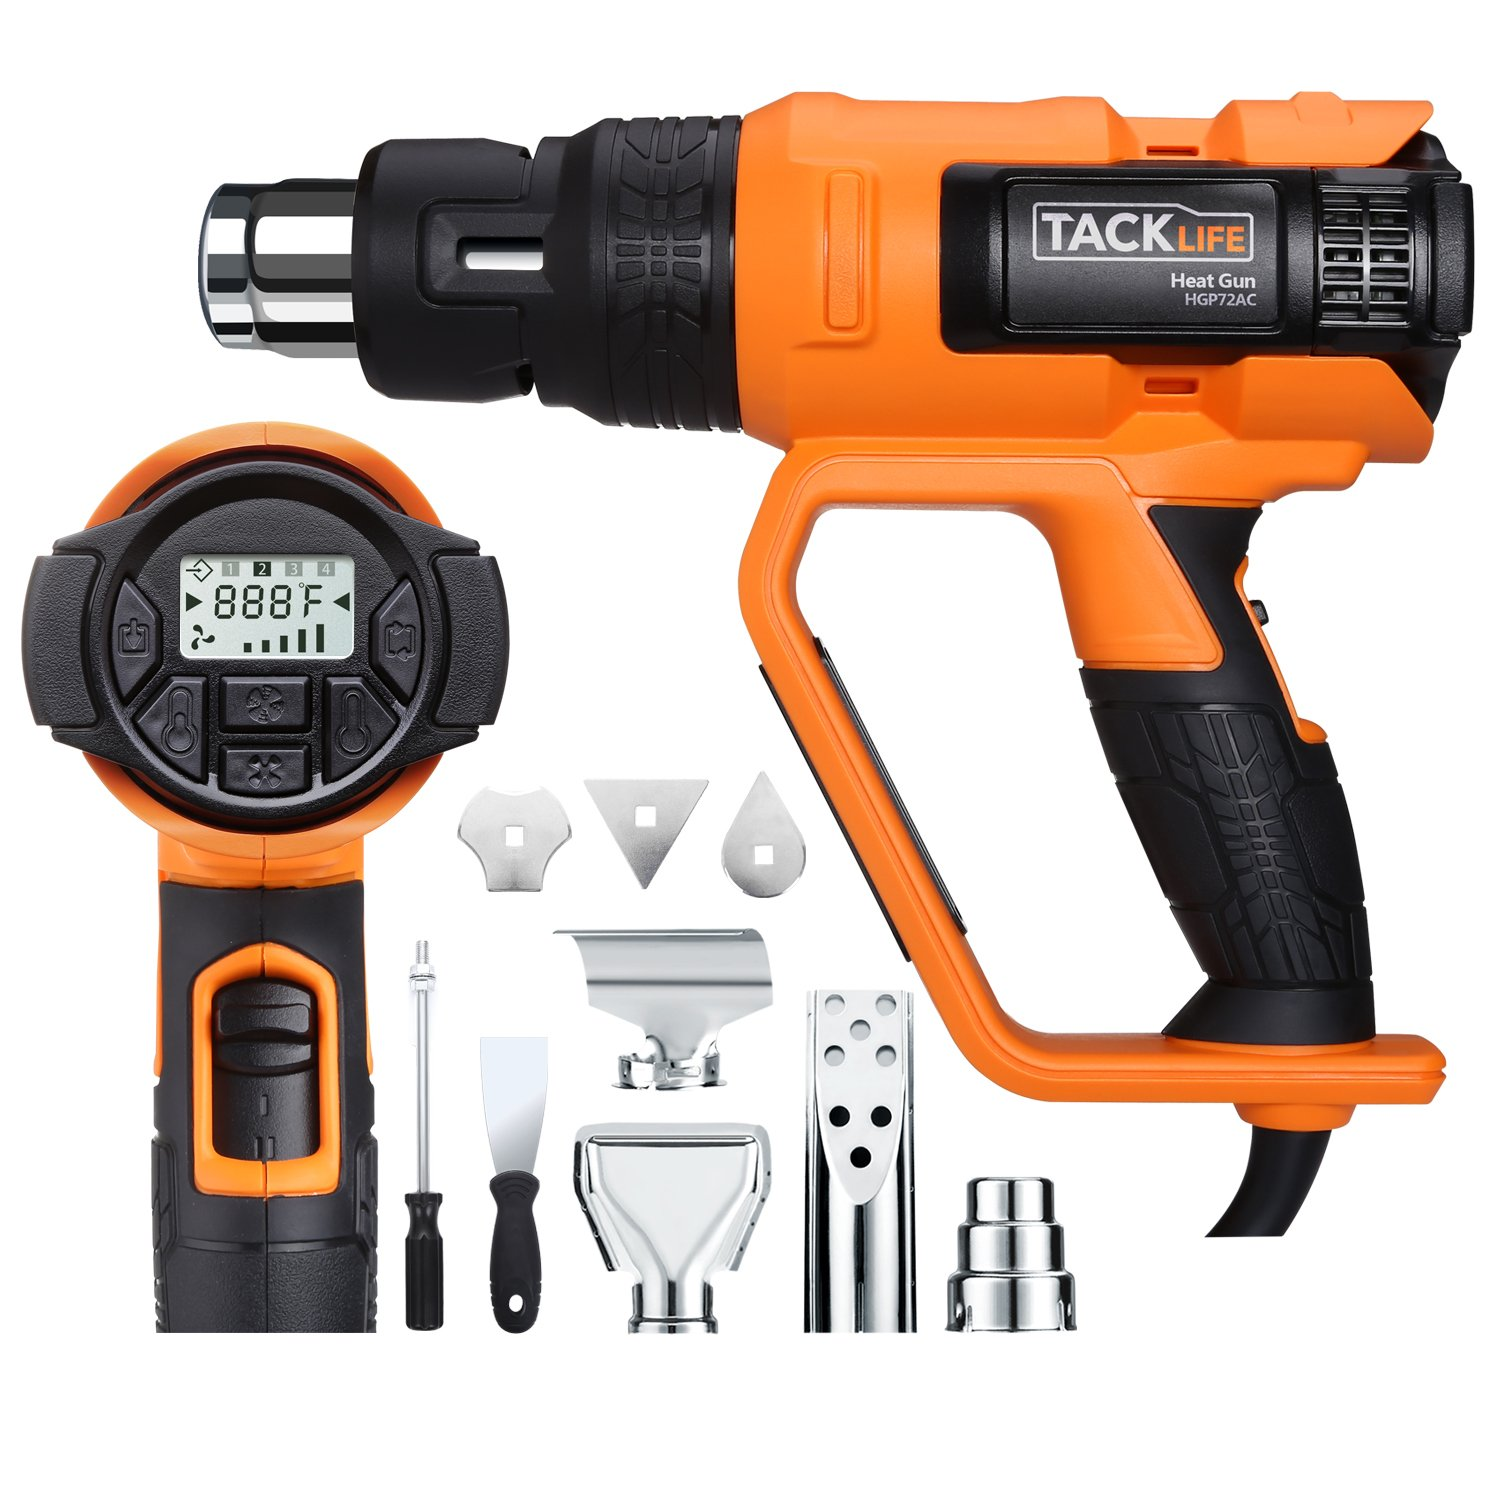 Tacklife HGP72AC 1700W Heavy Duty Heat Gun HT 1202℉ with Large LCD Display, Variable Temperature Adjustable Wind Speed and Memory Settings and Four Nozzles